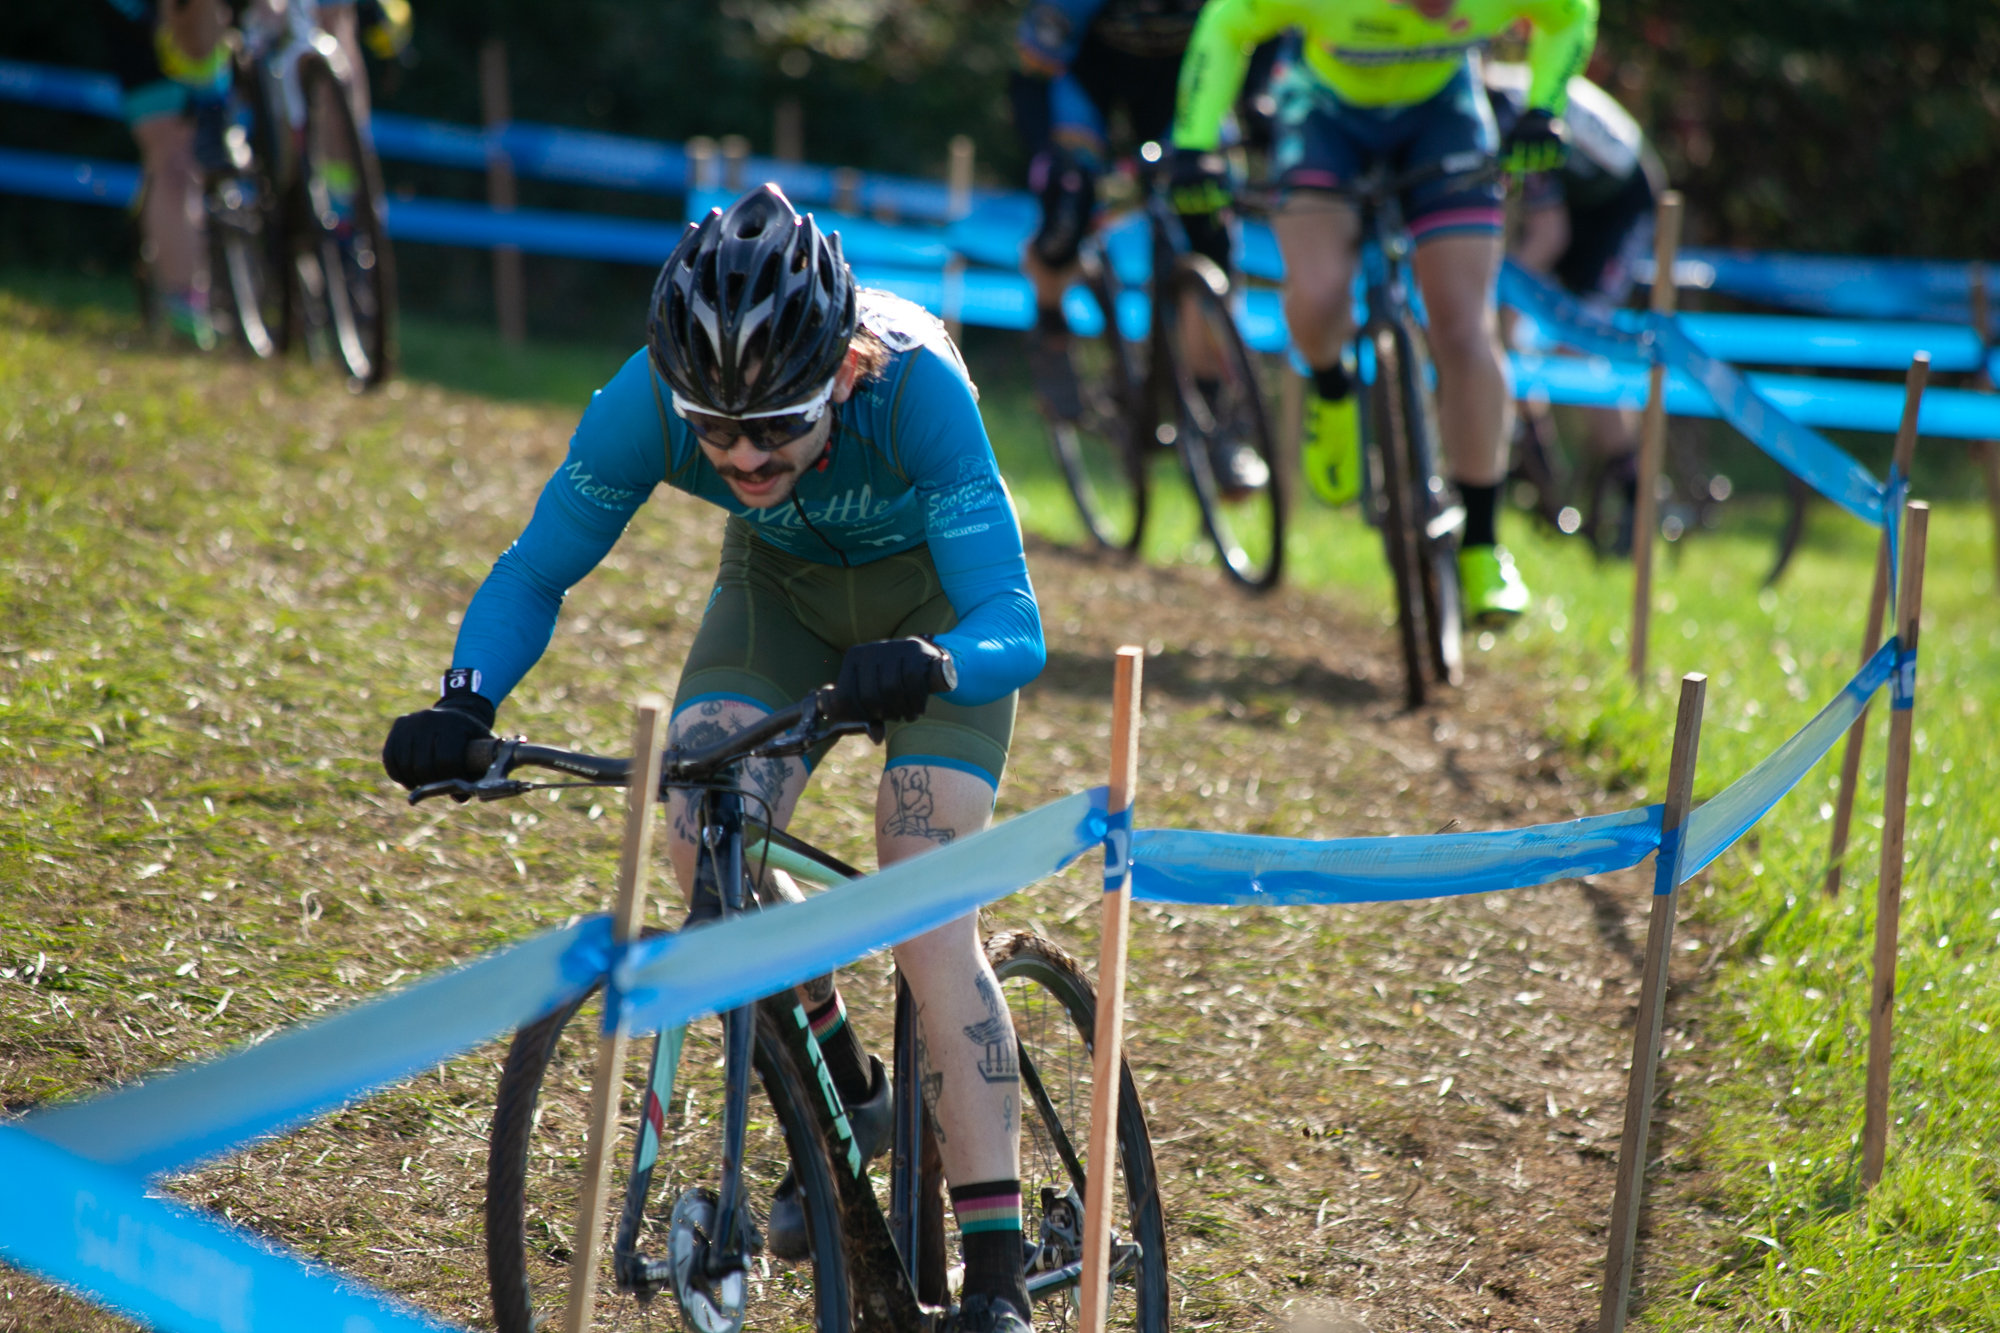 Cyclocross18_CCCX_RainierHS-90-mettlecycling.jpg